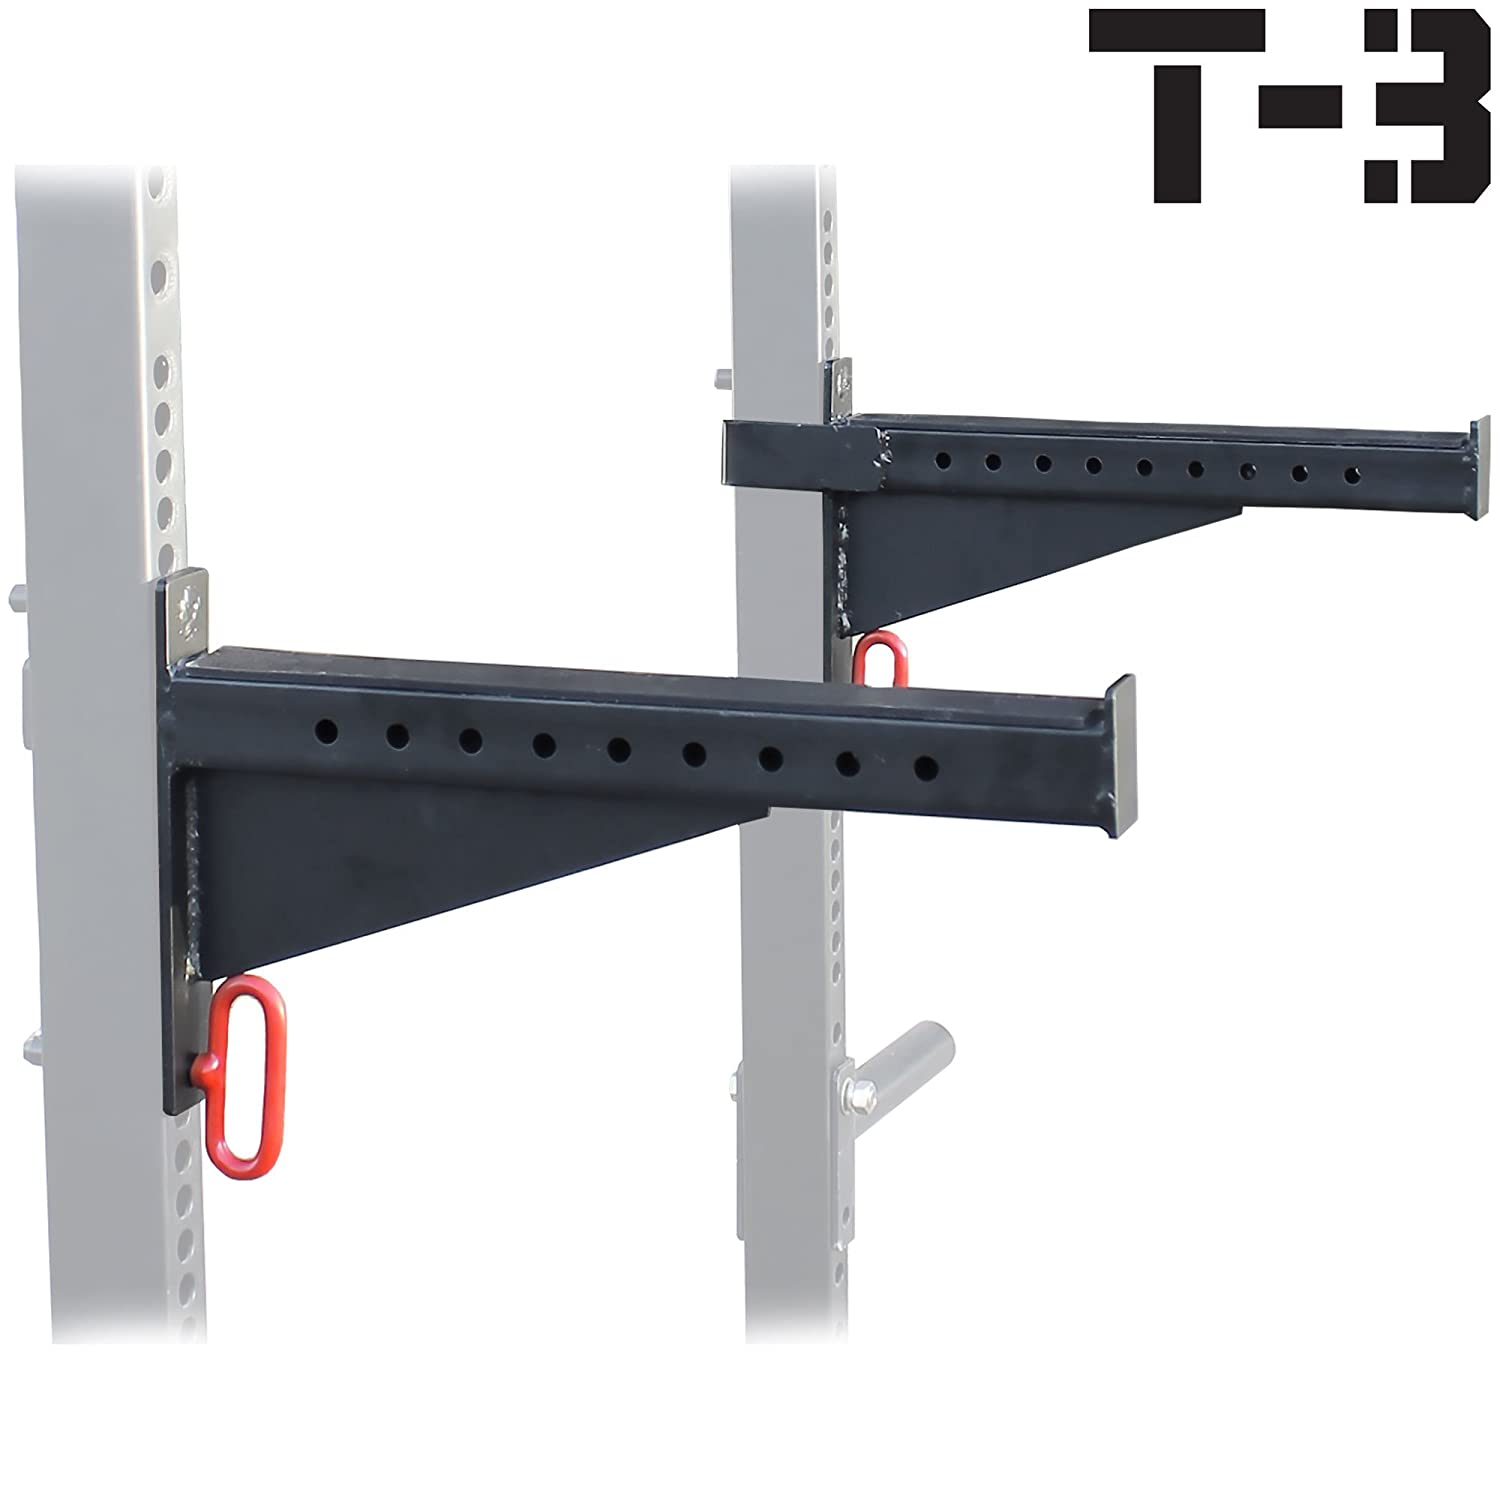 Amazoncom Spotter Arms For T 3 Hd Power Rack With 2X3